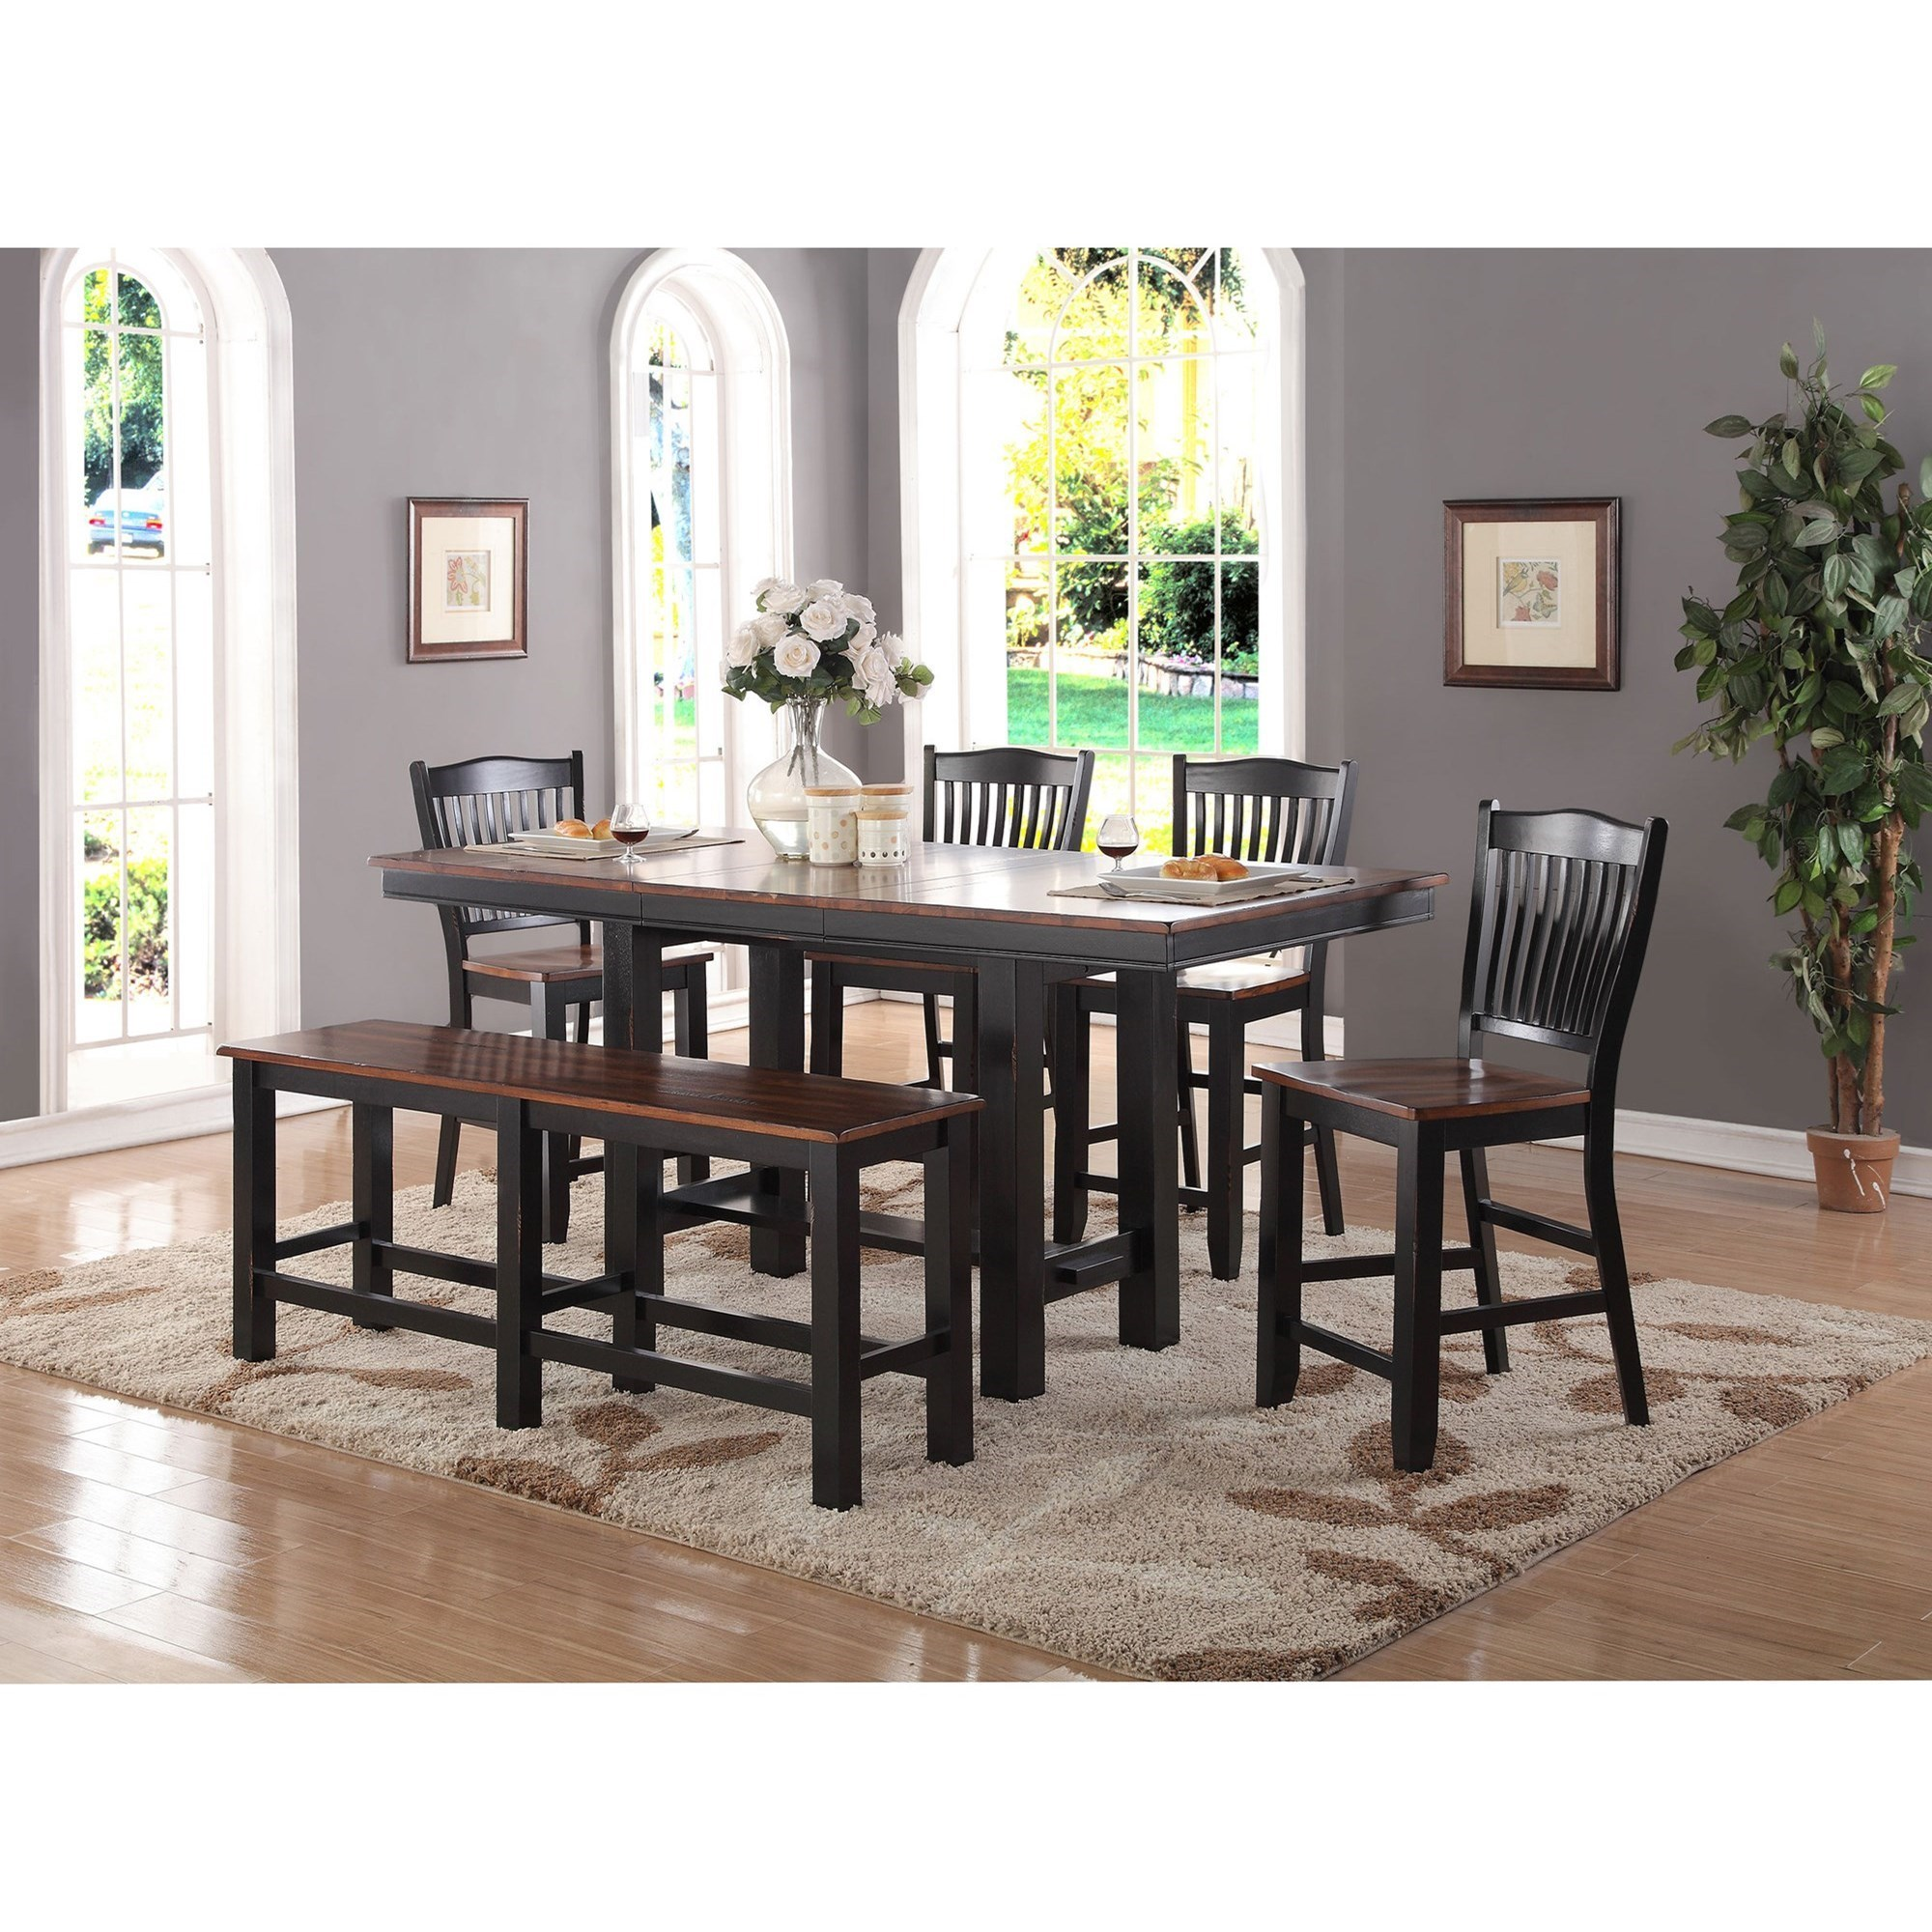 Attirant Carson 6 Piece Counter Height Dining Set By Winners Only